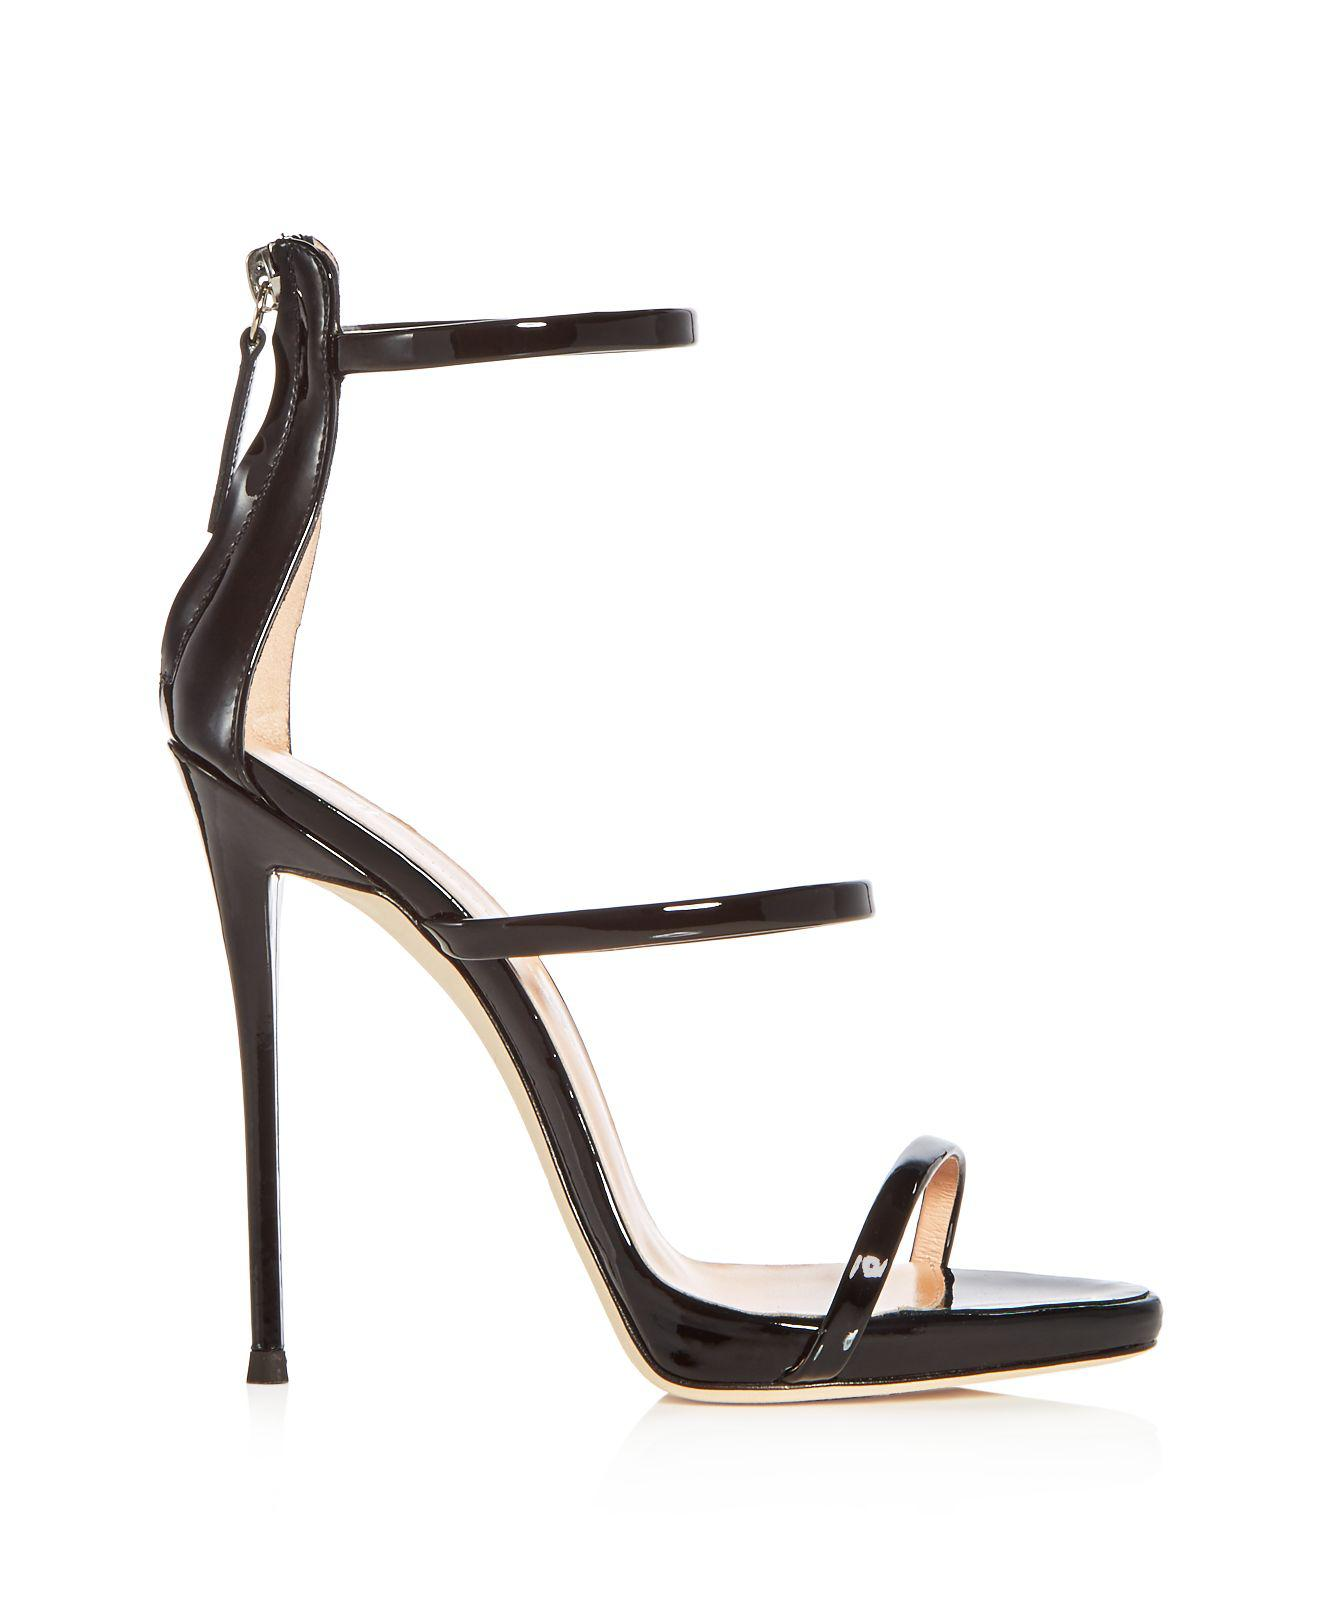 Giuseppe Zanotti Women's Vernice Patent Leather Ankle Strap High-Heel Sandals KPJpPHjlN